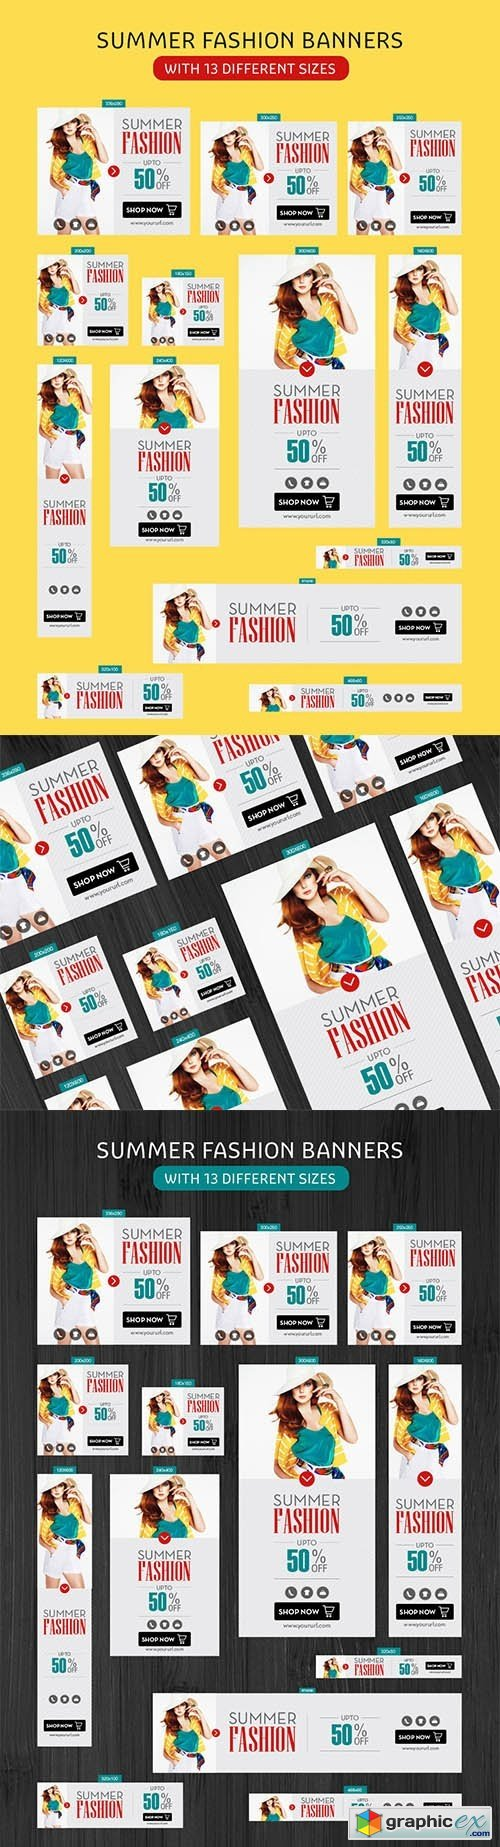 ai vector templates summer fashion banners 2016 free download